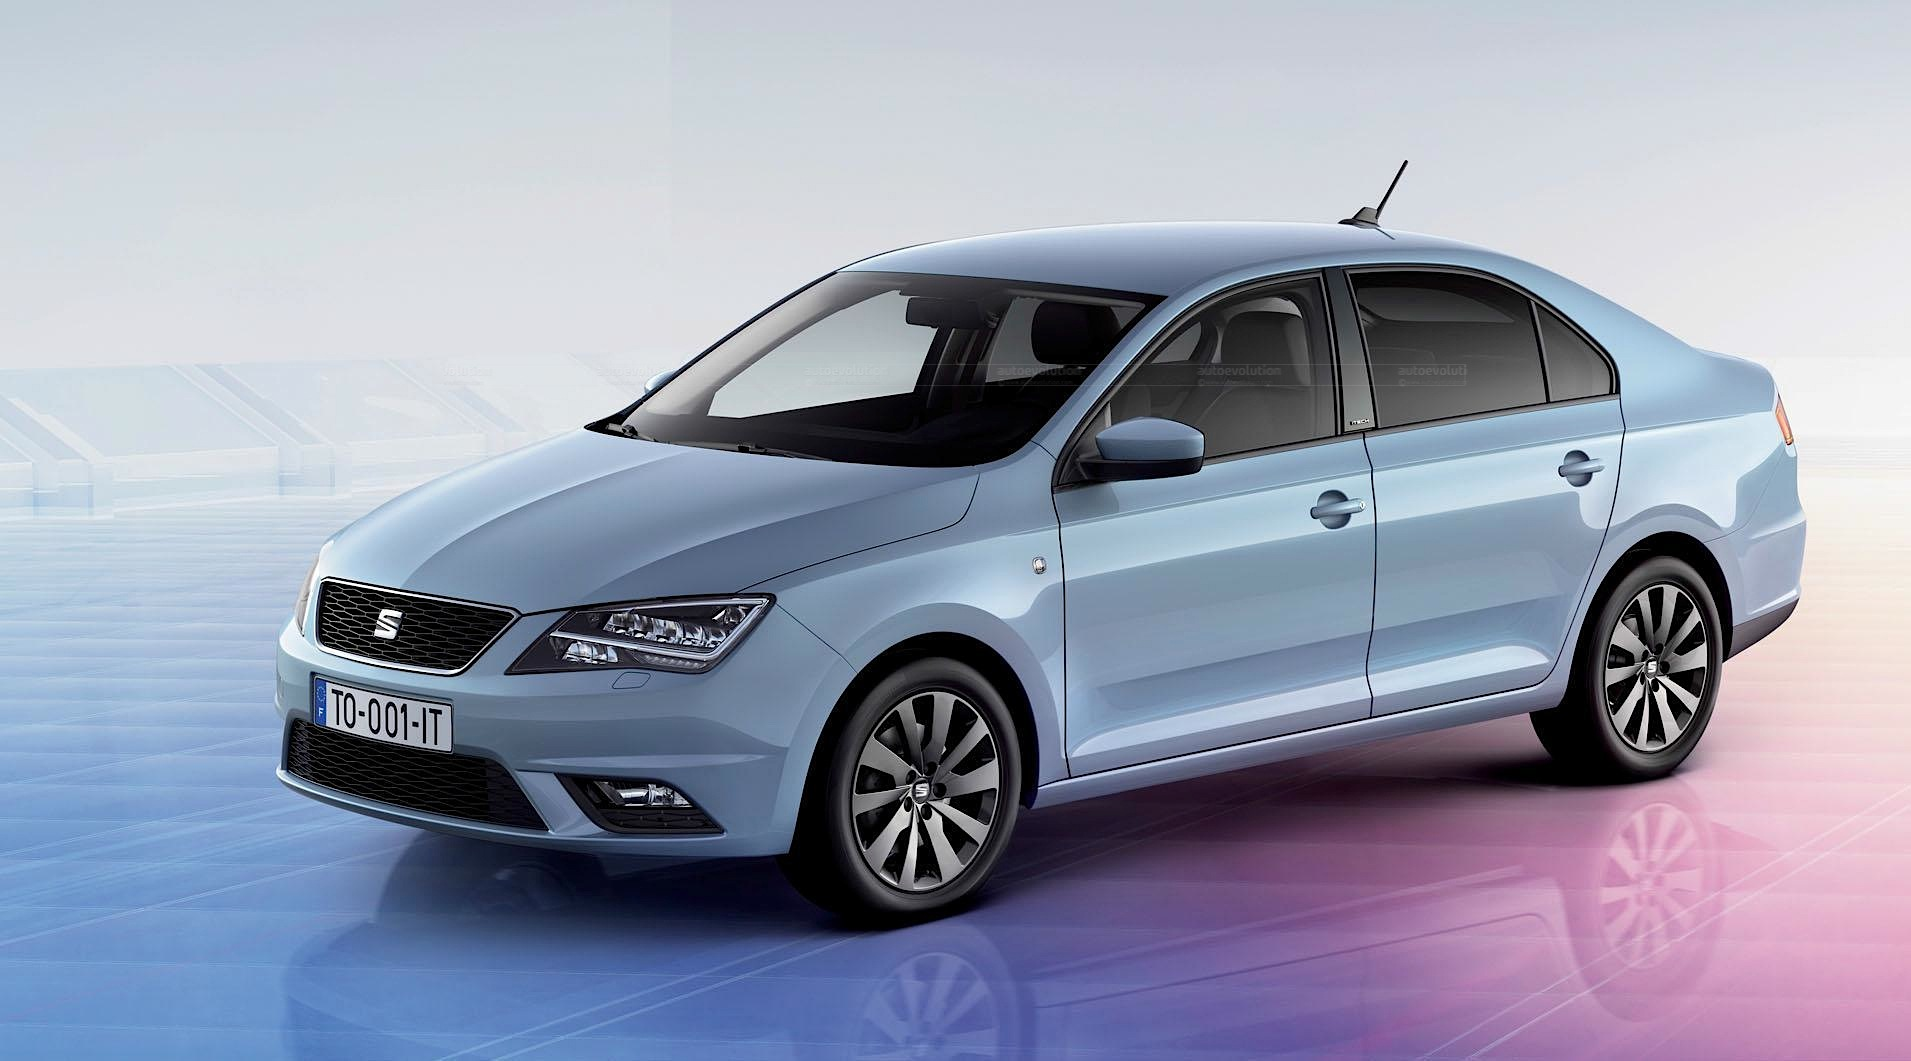 2015 SEAT Toledo Receives LED Headlights